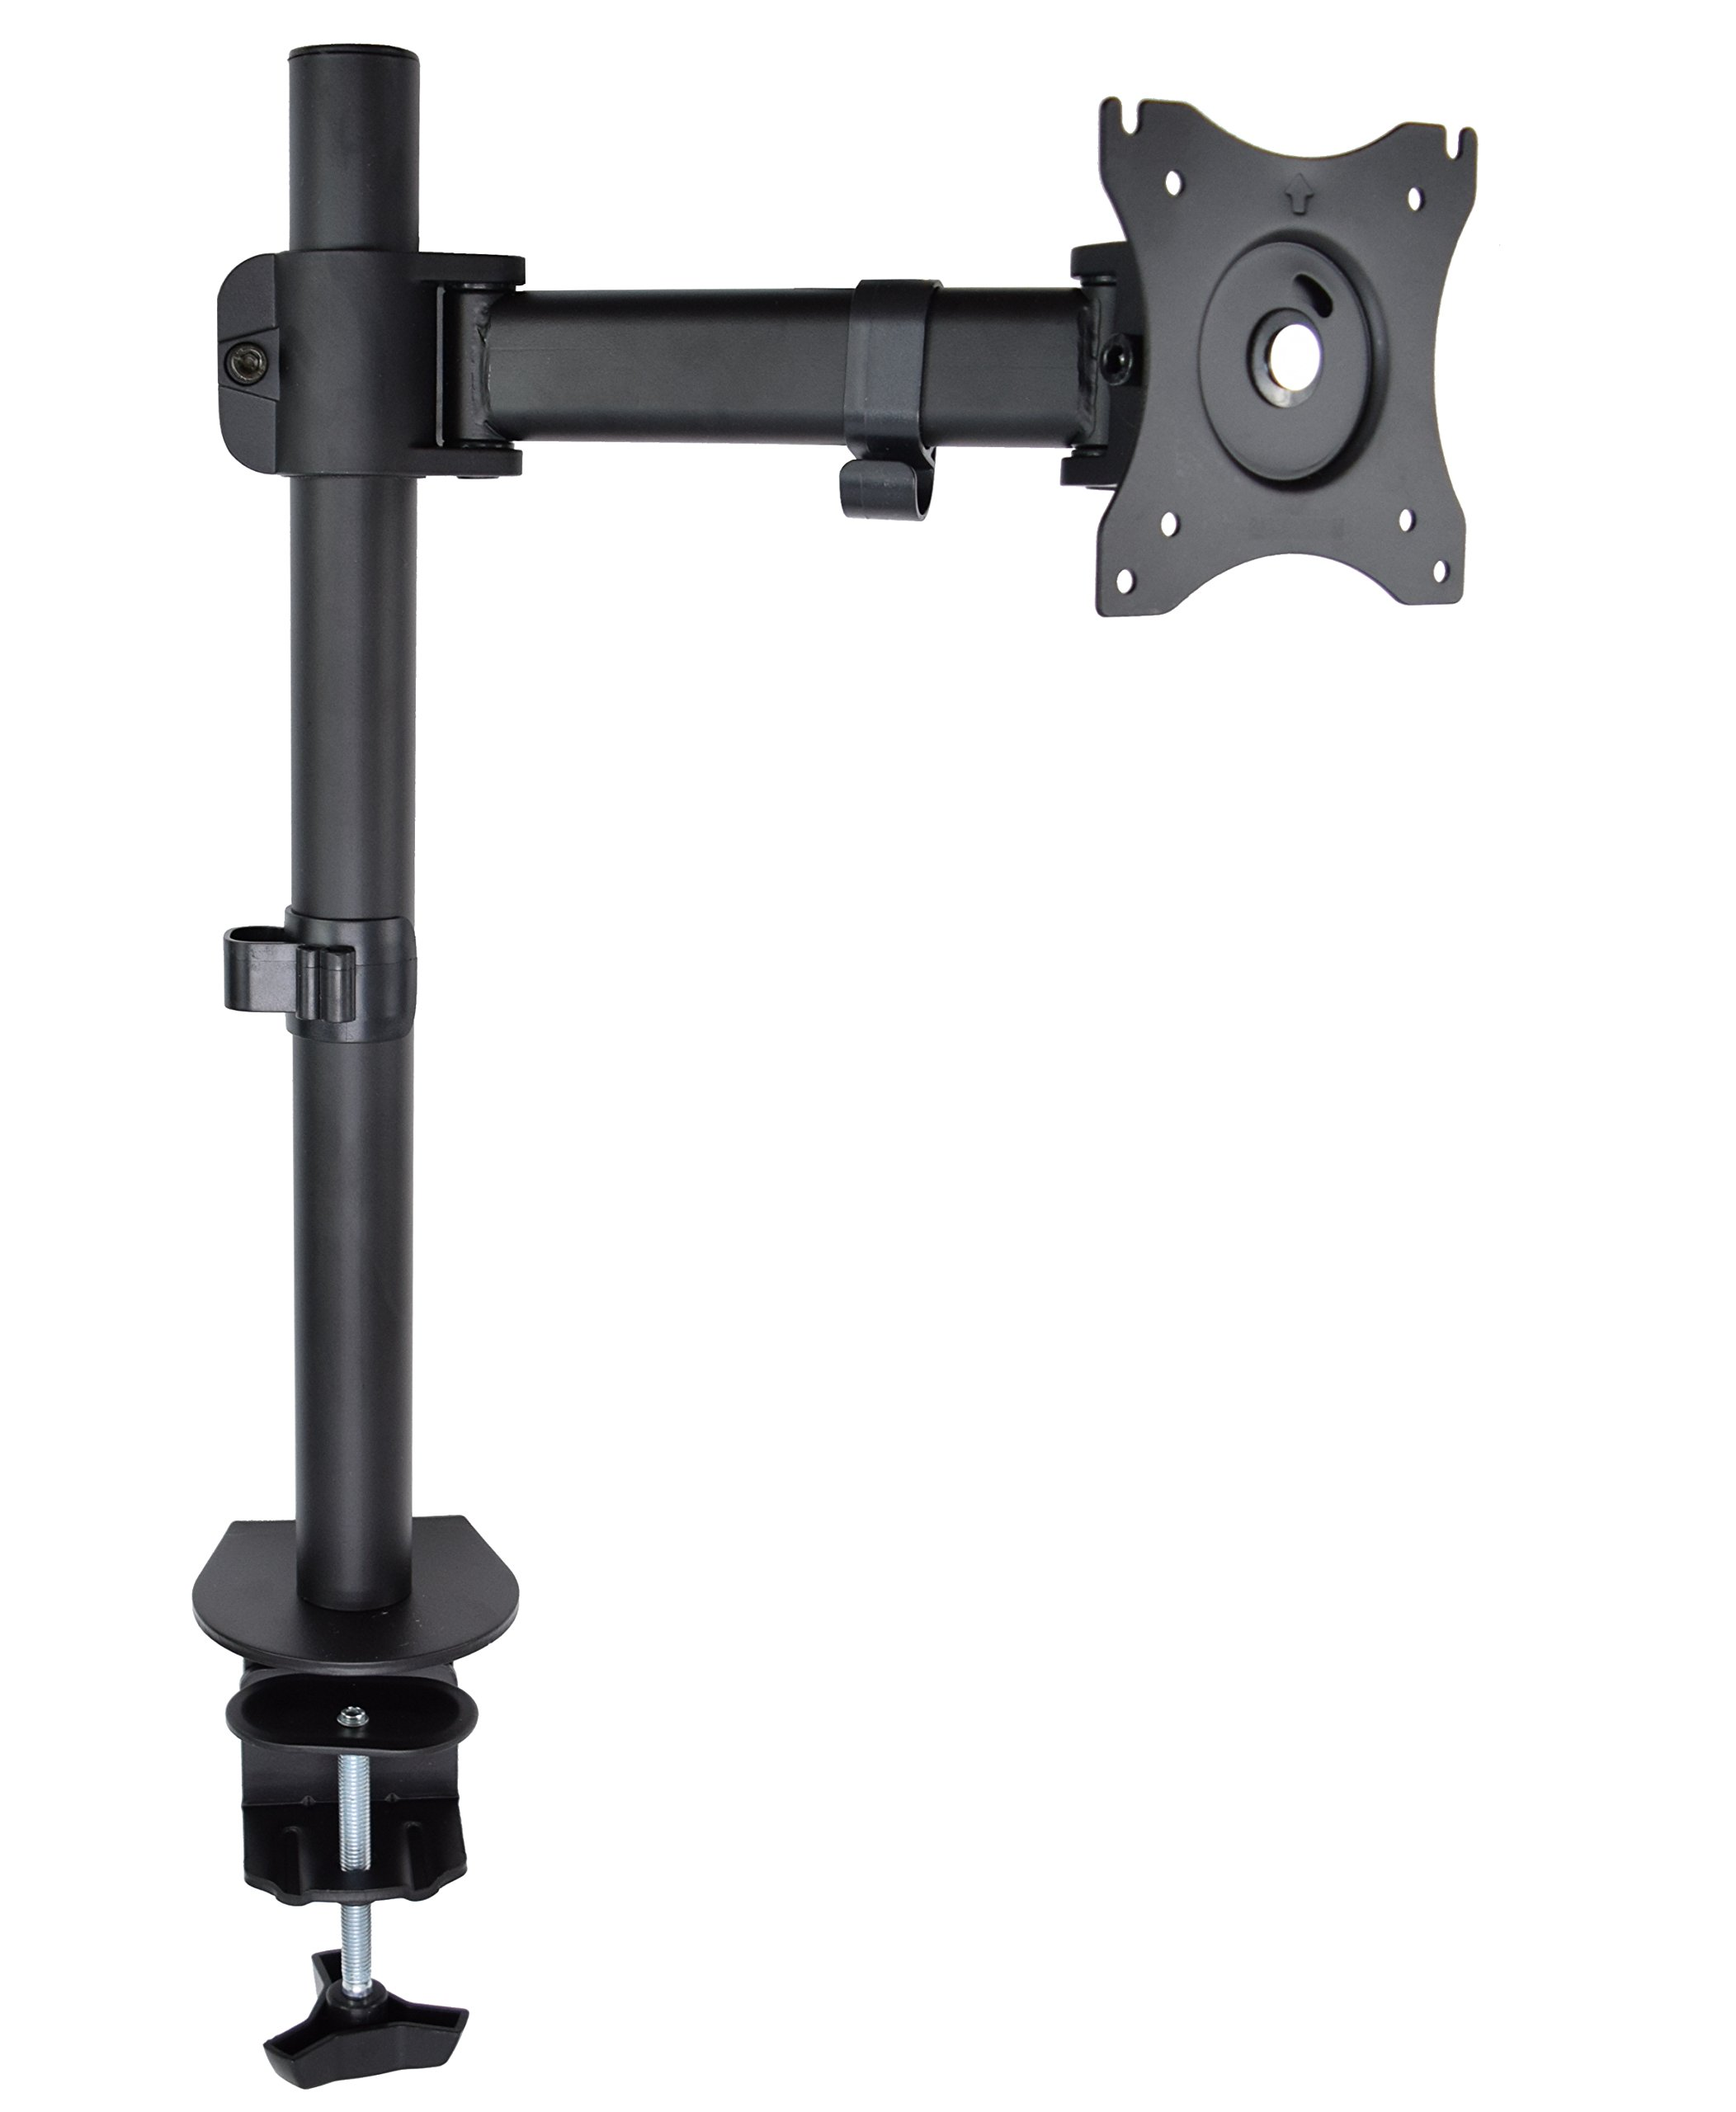 """VIVO Single Monitor Fully Adjustable Computer Desk Mount/Articulating Stand for 1 LCD Screen up to 32"""" (STAND-V001E)"""